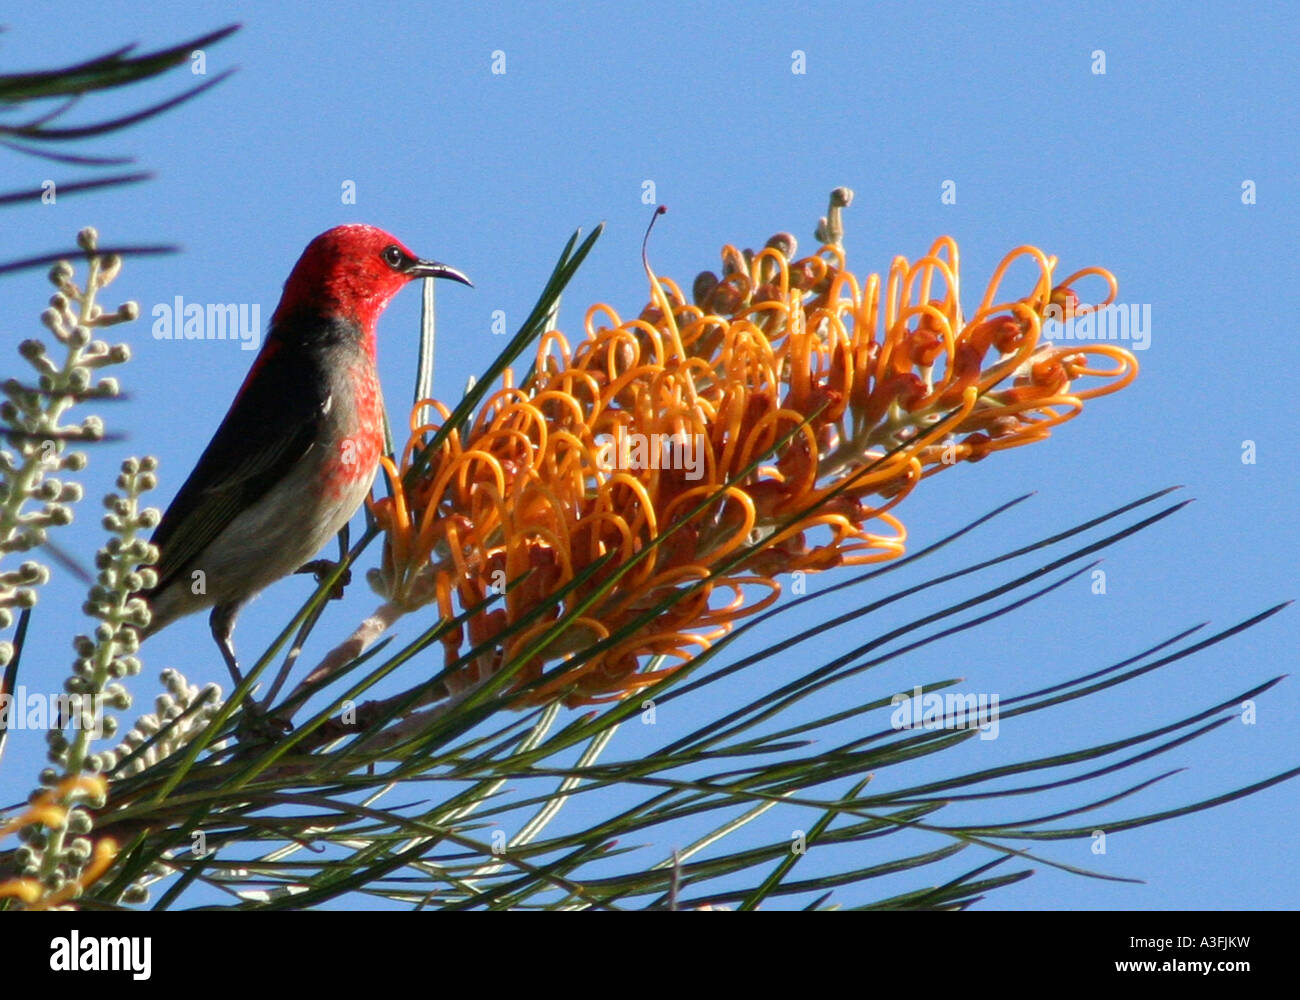 A SCARLET HONEYEATER FEEDING ON A GREVILLEA TREE BAPDA9090 - Stock Image